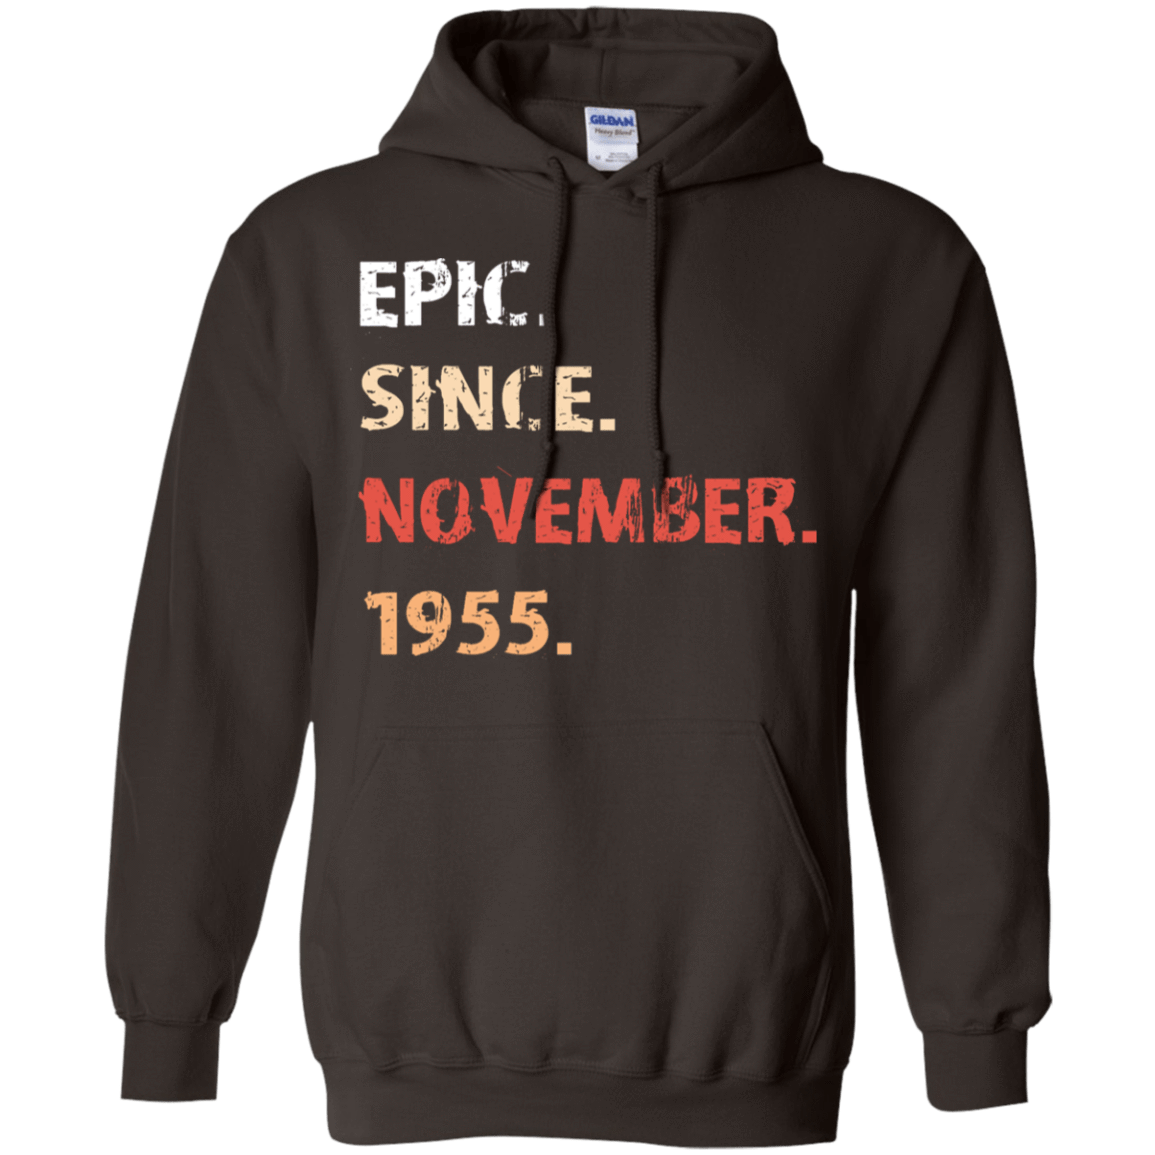 Epic Since November 1955 Birthday Gift 541-4752-71482139-23095 - Tee Ript